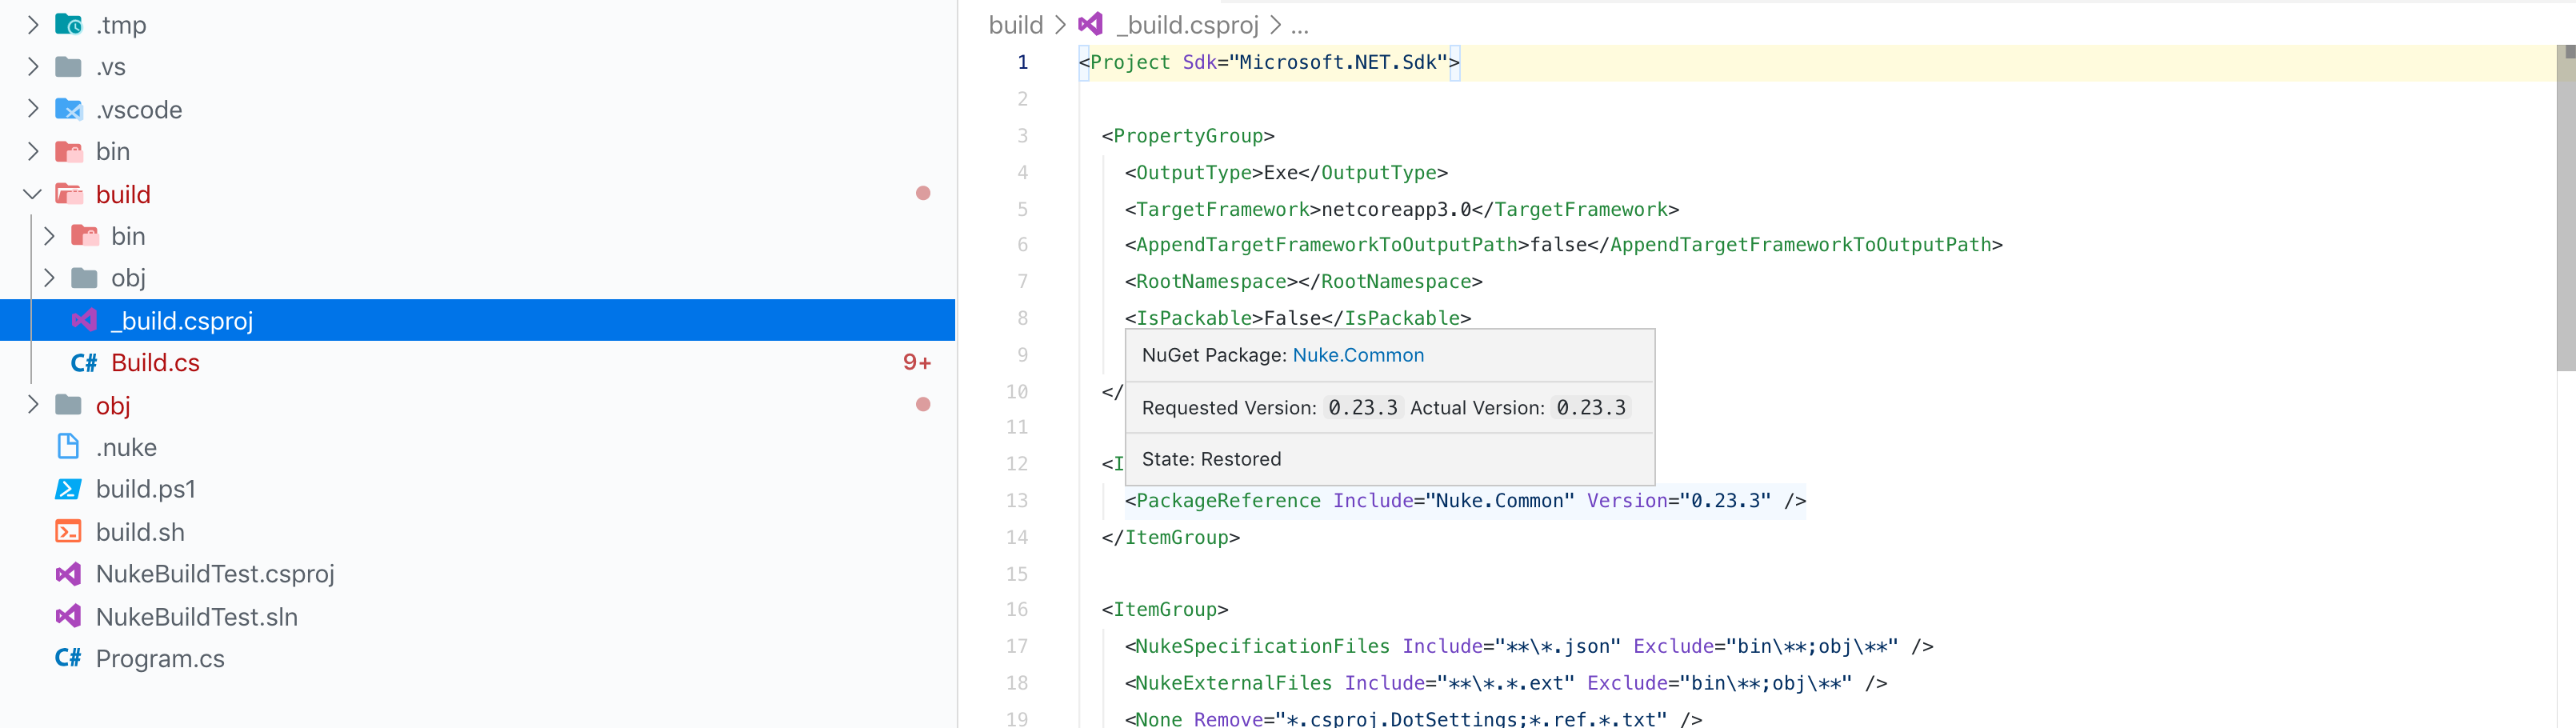 namespace 'Nuke' could not be found · Issue #333 · nuke